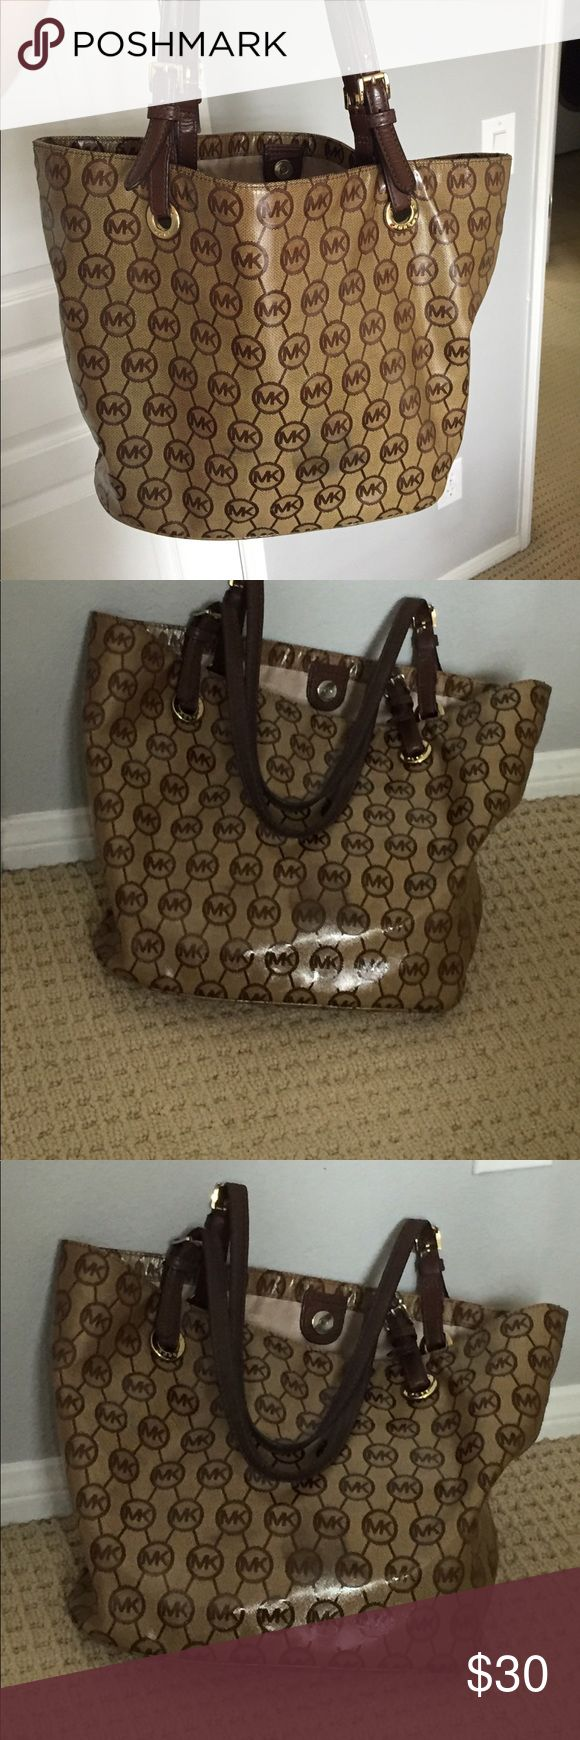 Tote Bag Brown and Beige Tote bag with loads of organizational pockets Michael Kors Bags Totes